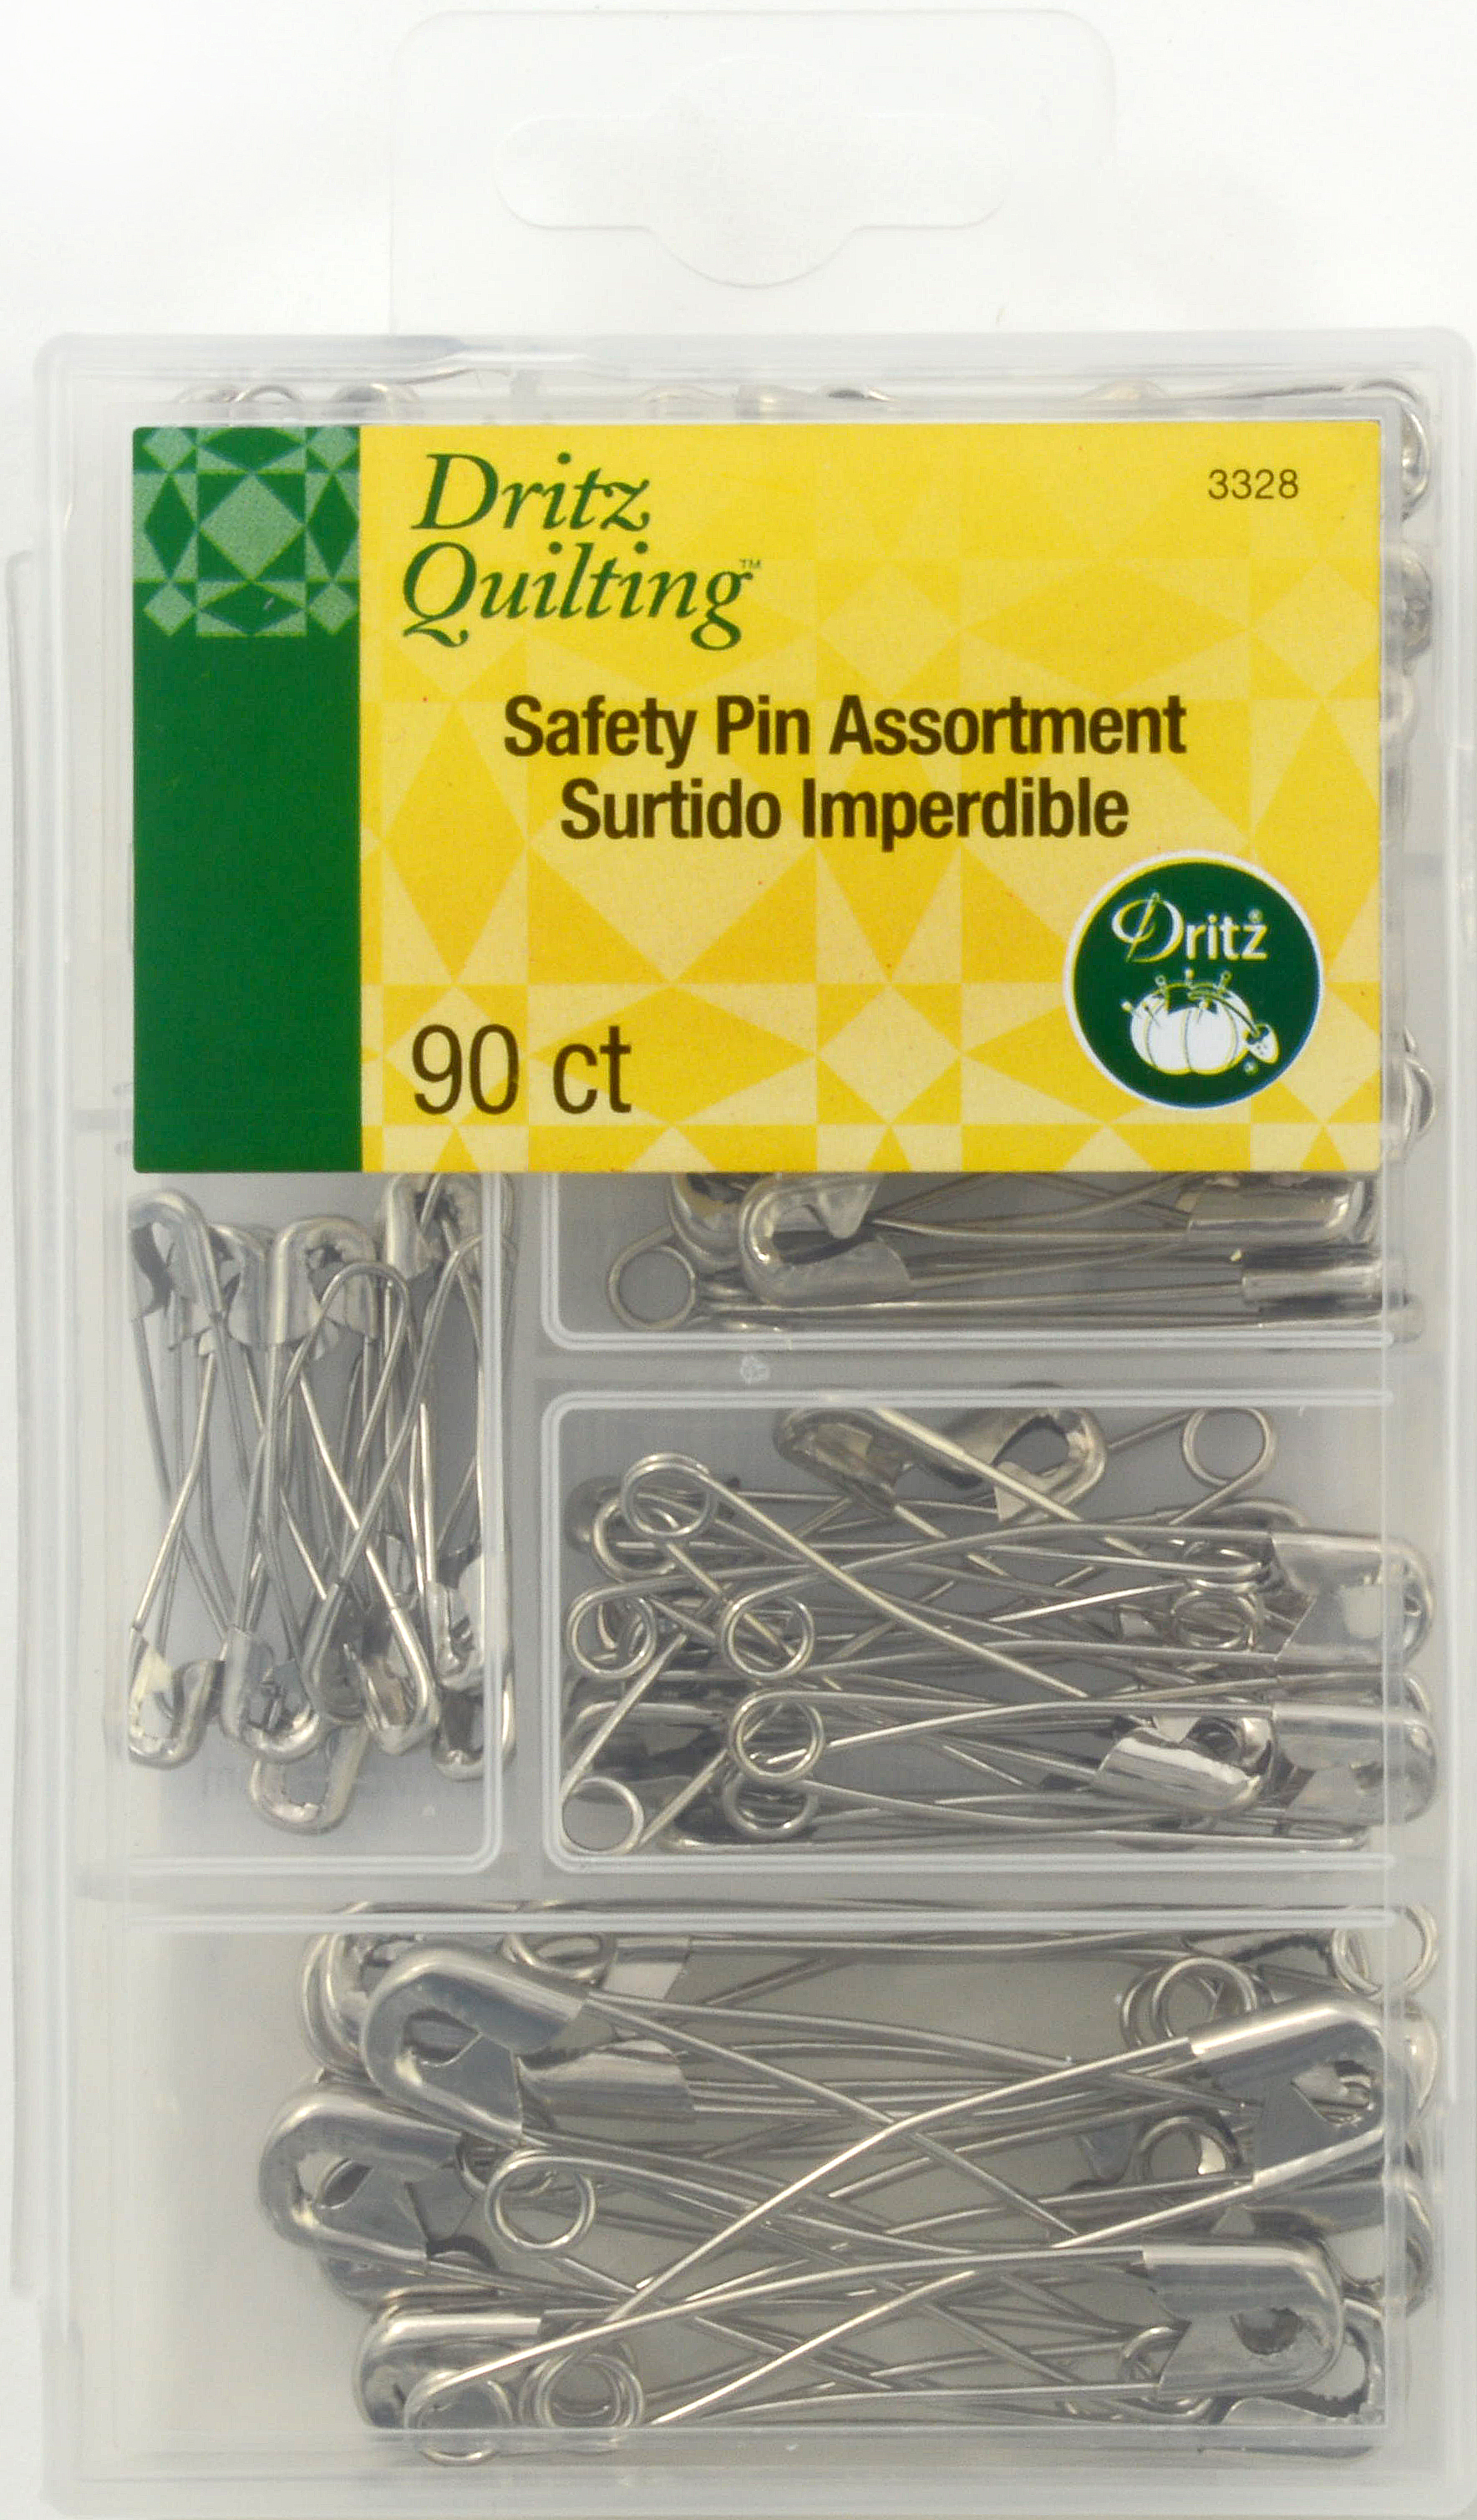 Safety Pin Assortment